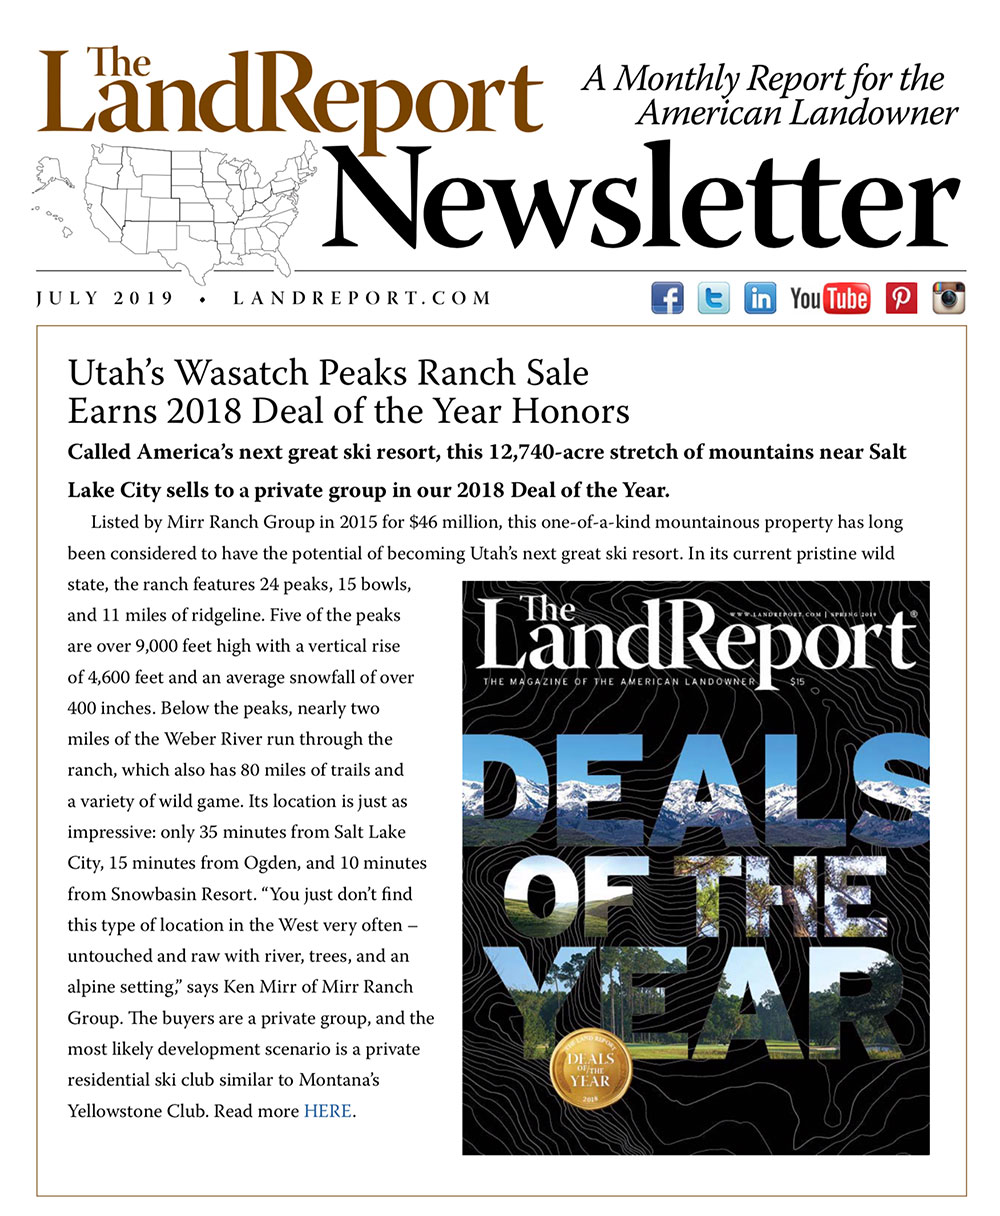 Land Report Newsletter July 2019